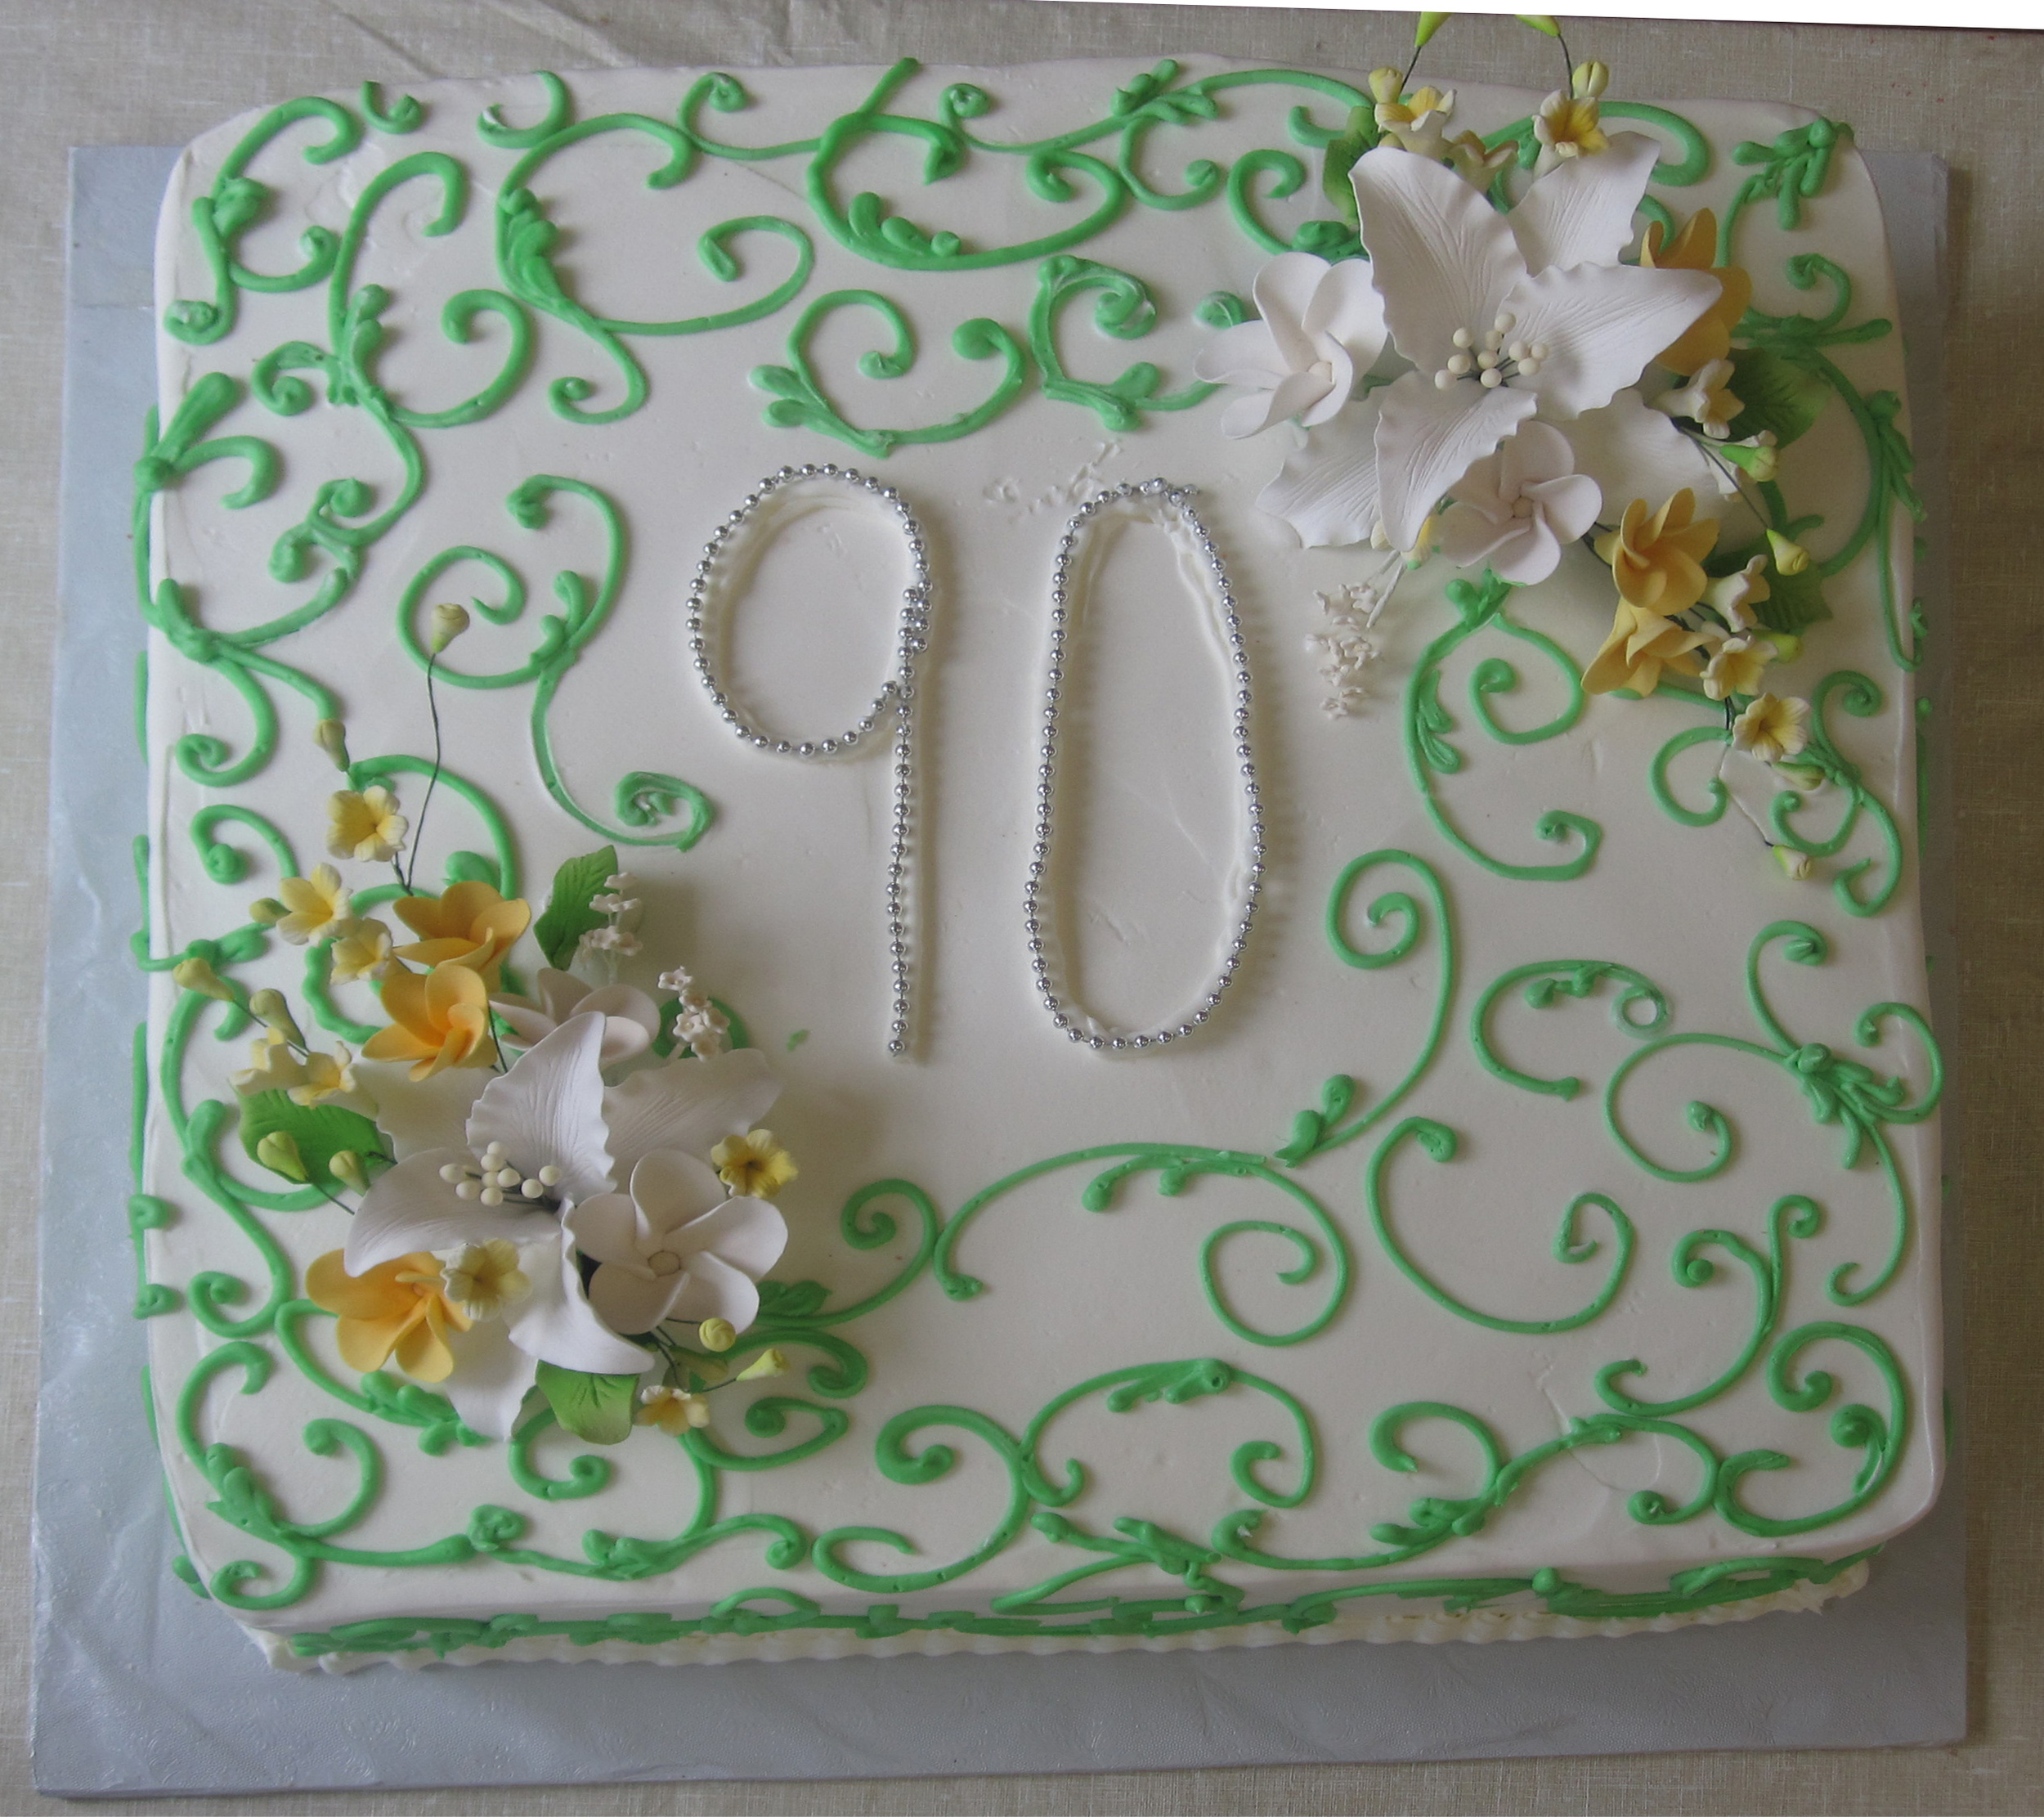 Swirls in green with 2 Gum Paste Bouquets & number